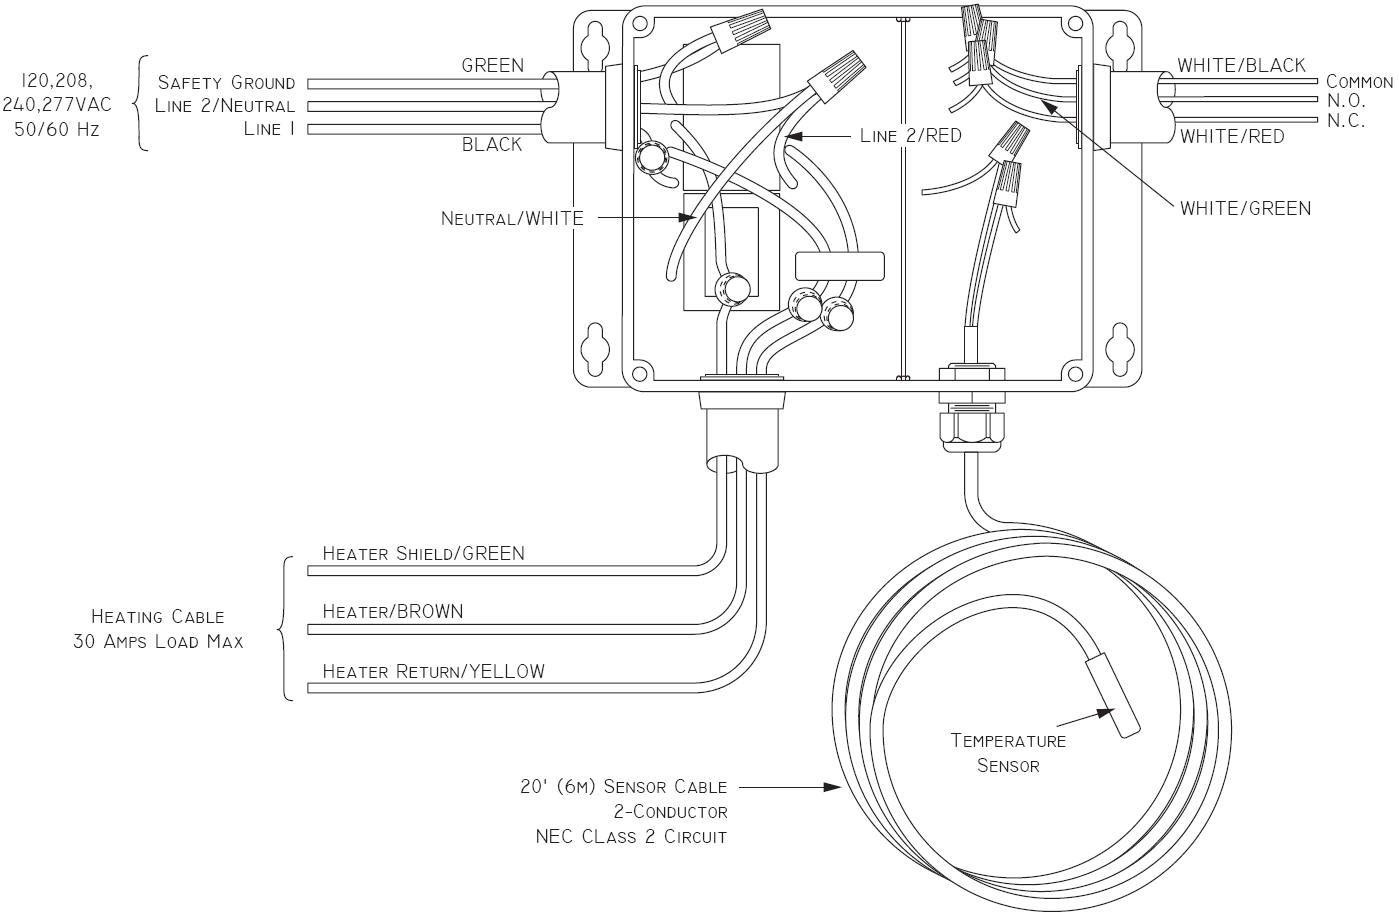 ta1aw electric baseboard heater wiring diagram